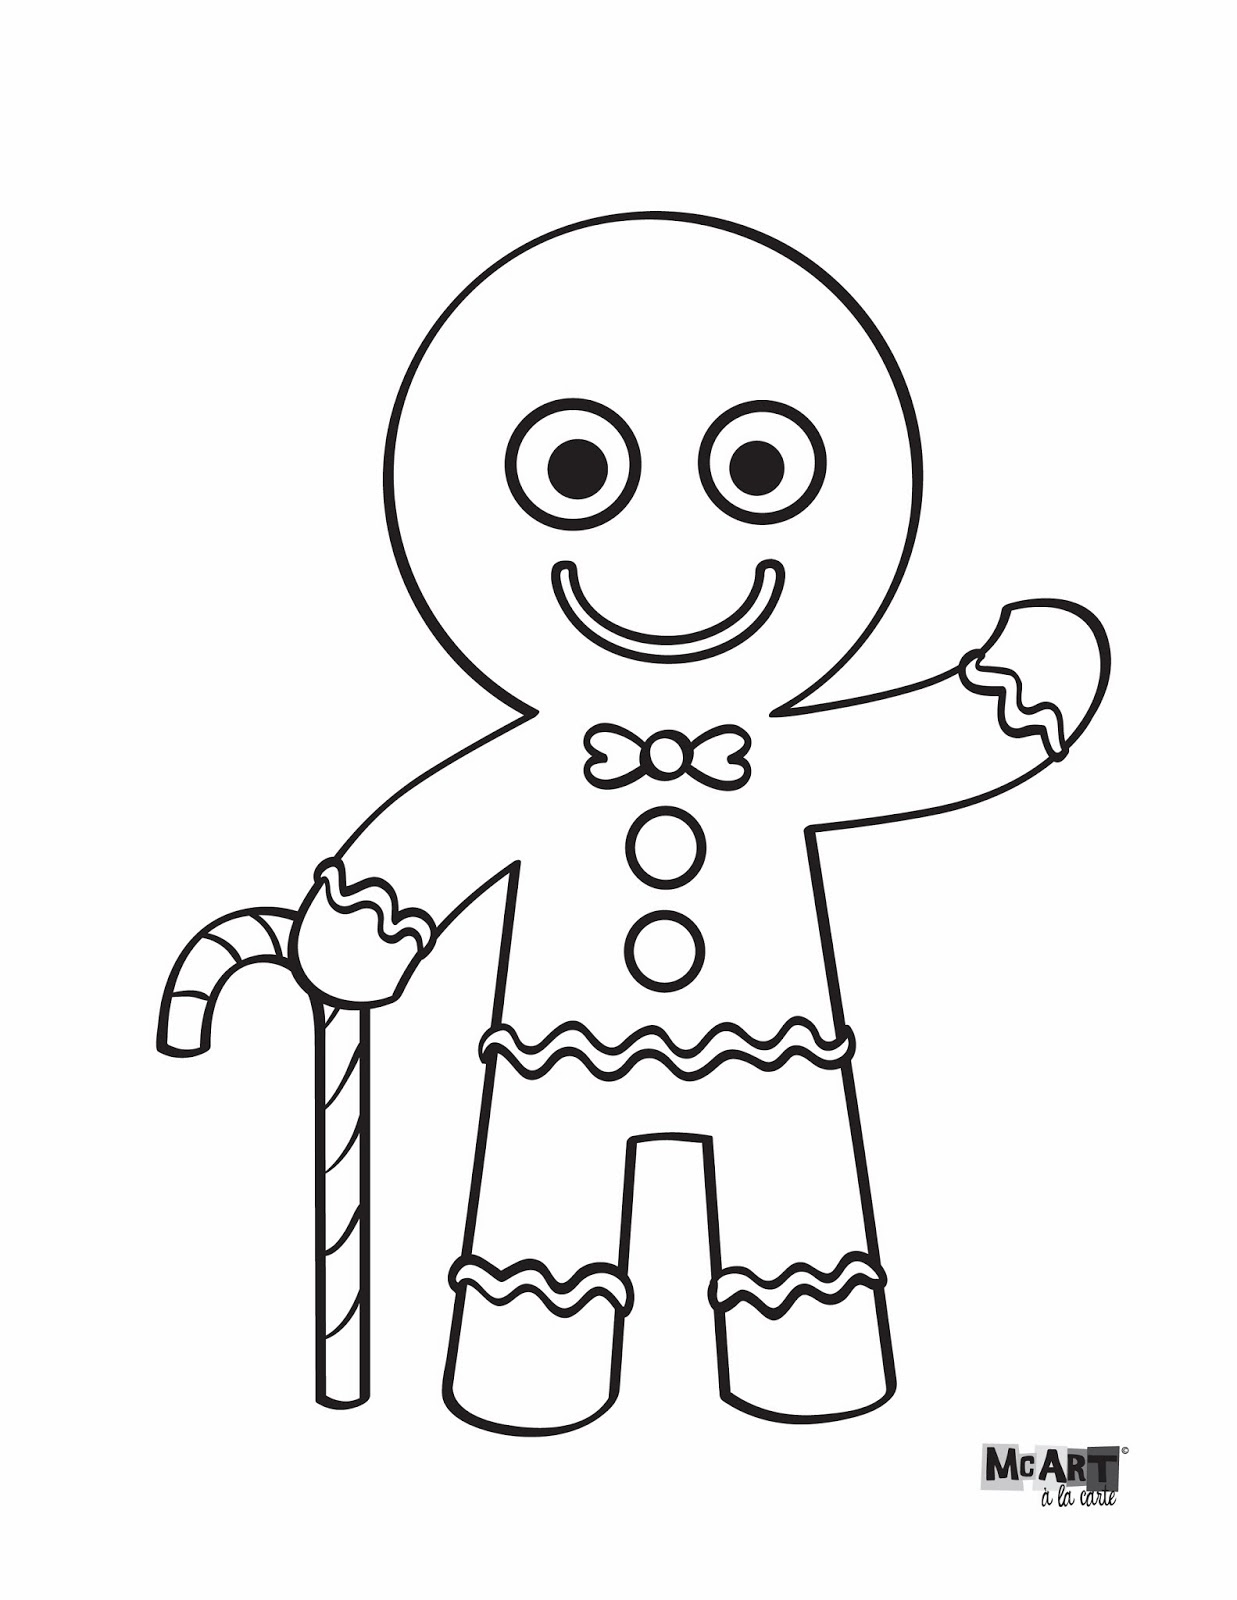 ginger man coloring pages - photo#8